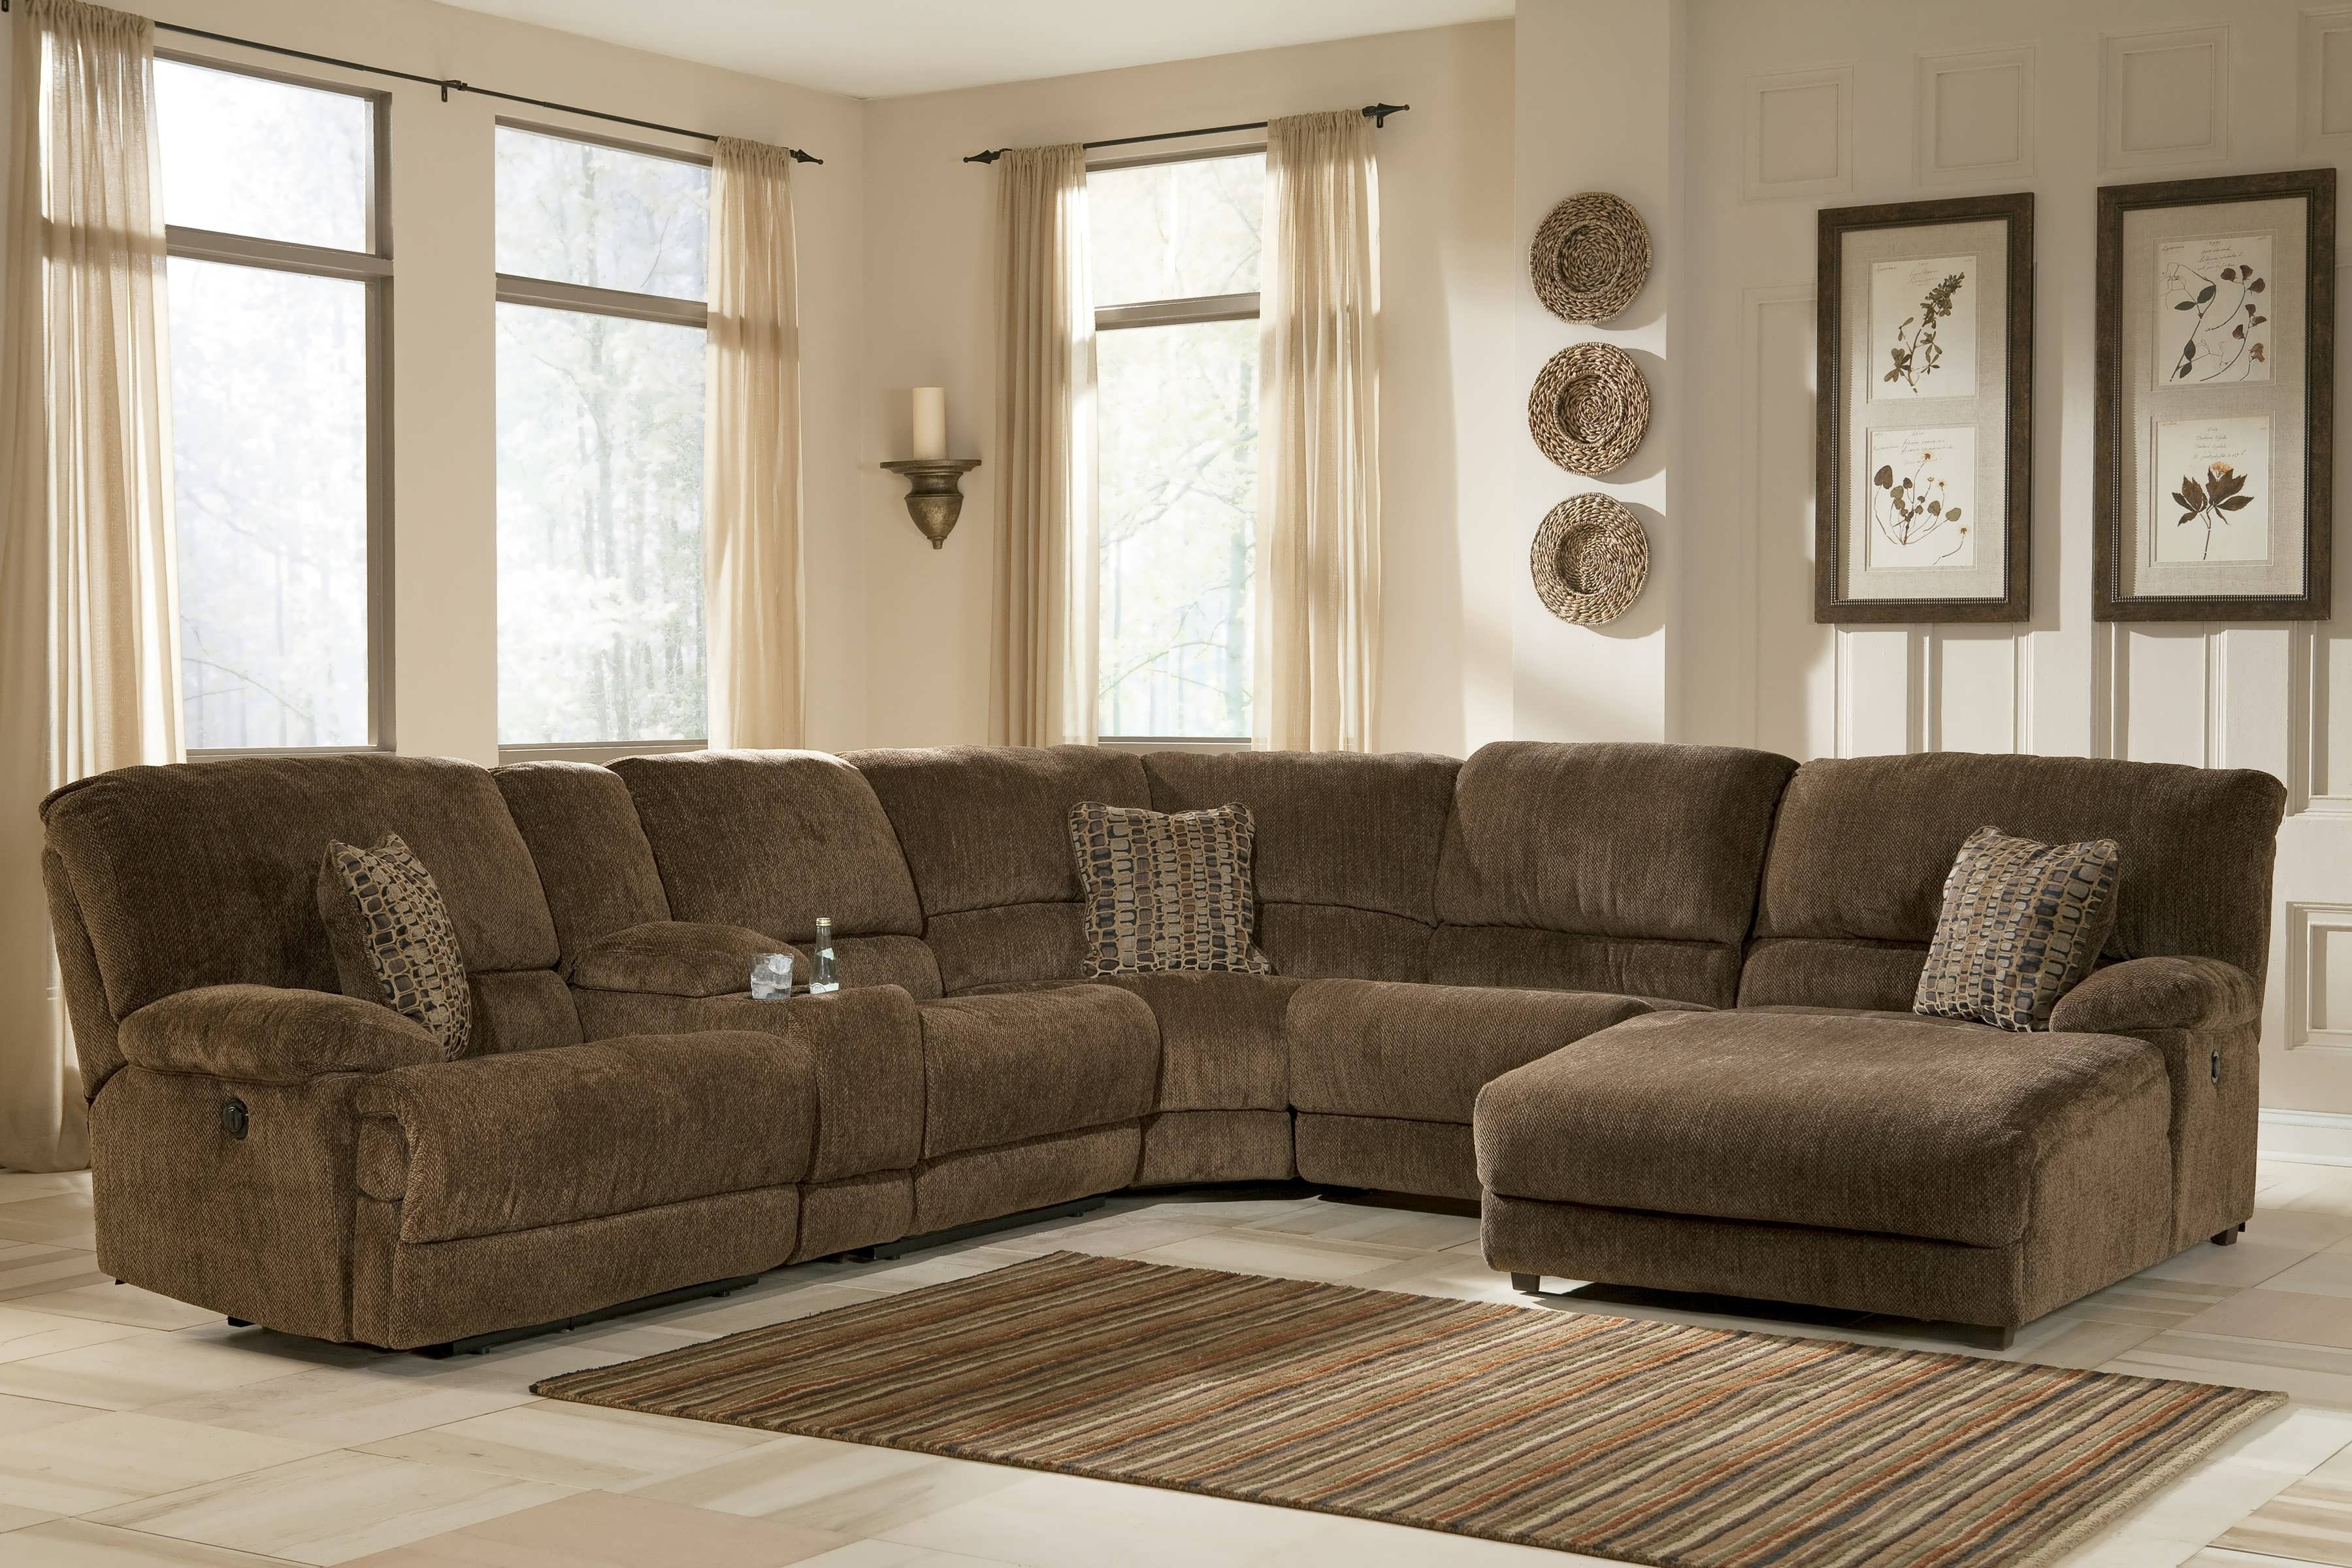 Sectional Sofas With Recliners And Chaise With Regard To Most Up To Date Sofa : Small Sectional Couch Gray Sectional Small Sectional Sofa (View 12 of 15)